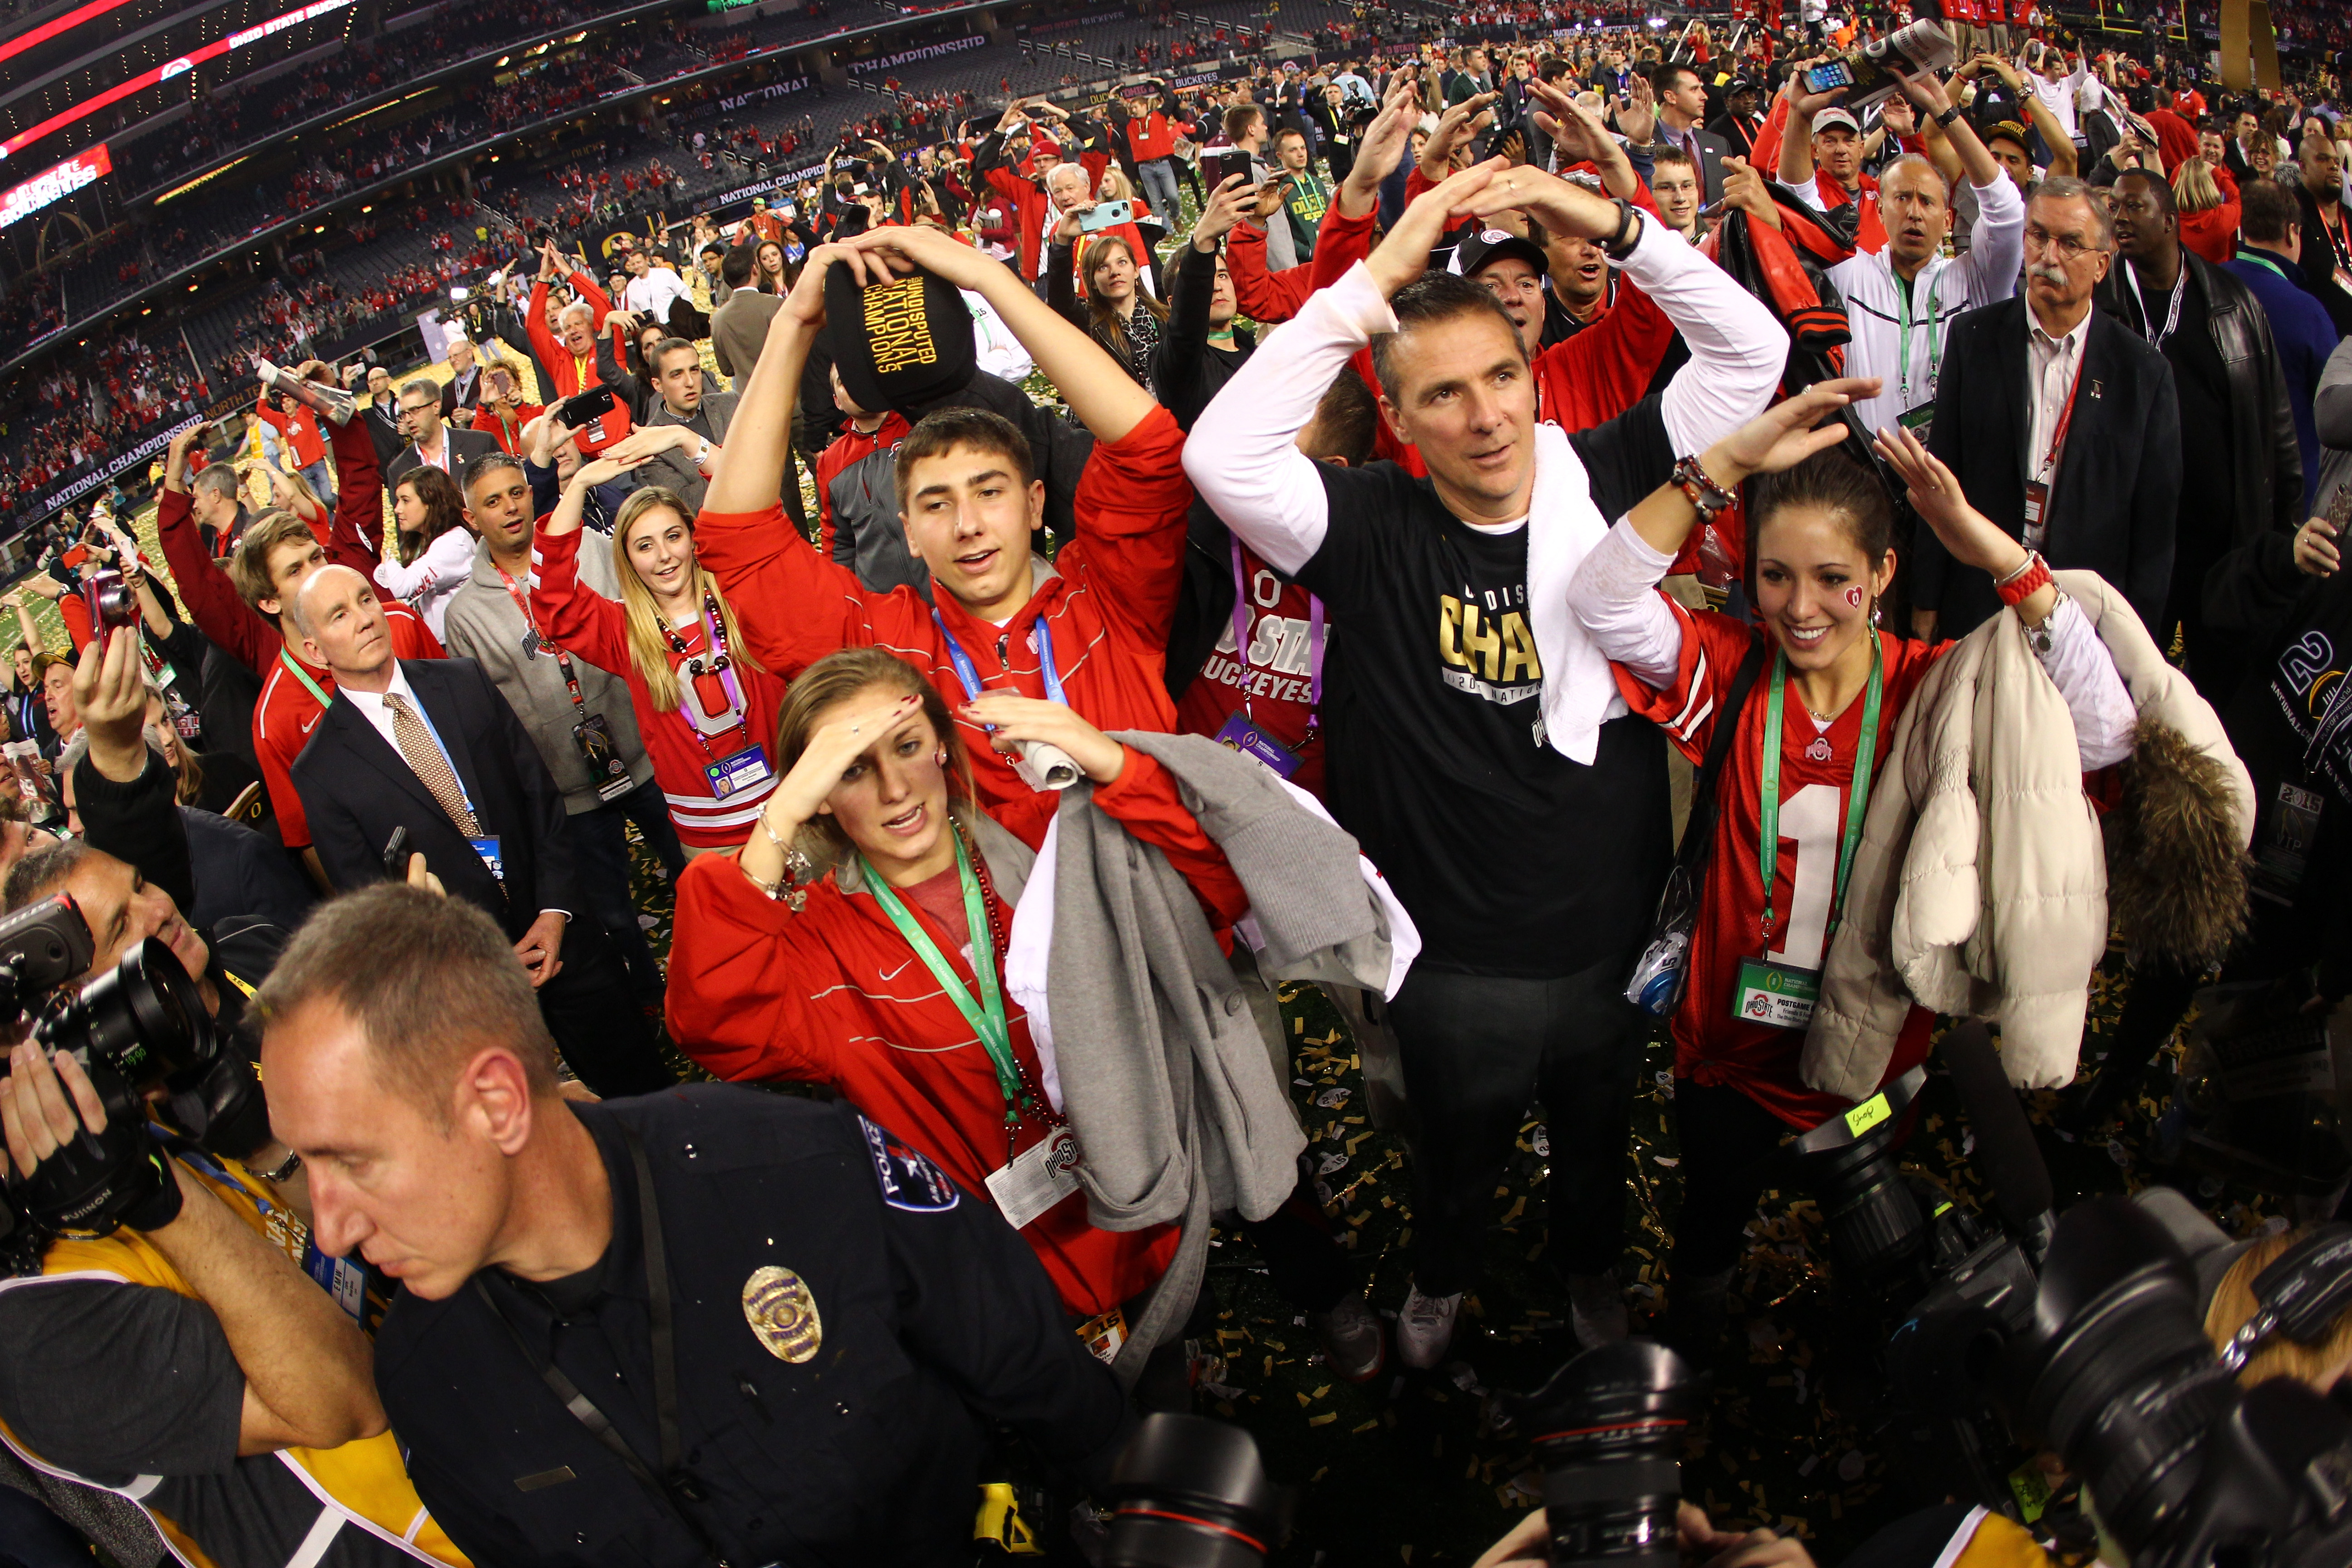 ARLINGTON, TX - JANUARY 12:  Head Coach Urban Meyer of the Ohio State Buckeyes celebrates after defeating the Oregon Ducks 42 to 20 in the College Football Playoff National Championship Game at AT&T Stadium on January 12, 2015 in Arlington, Texas.  (Photo by Jamie Squire/Getty Images)